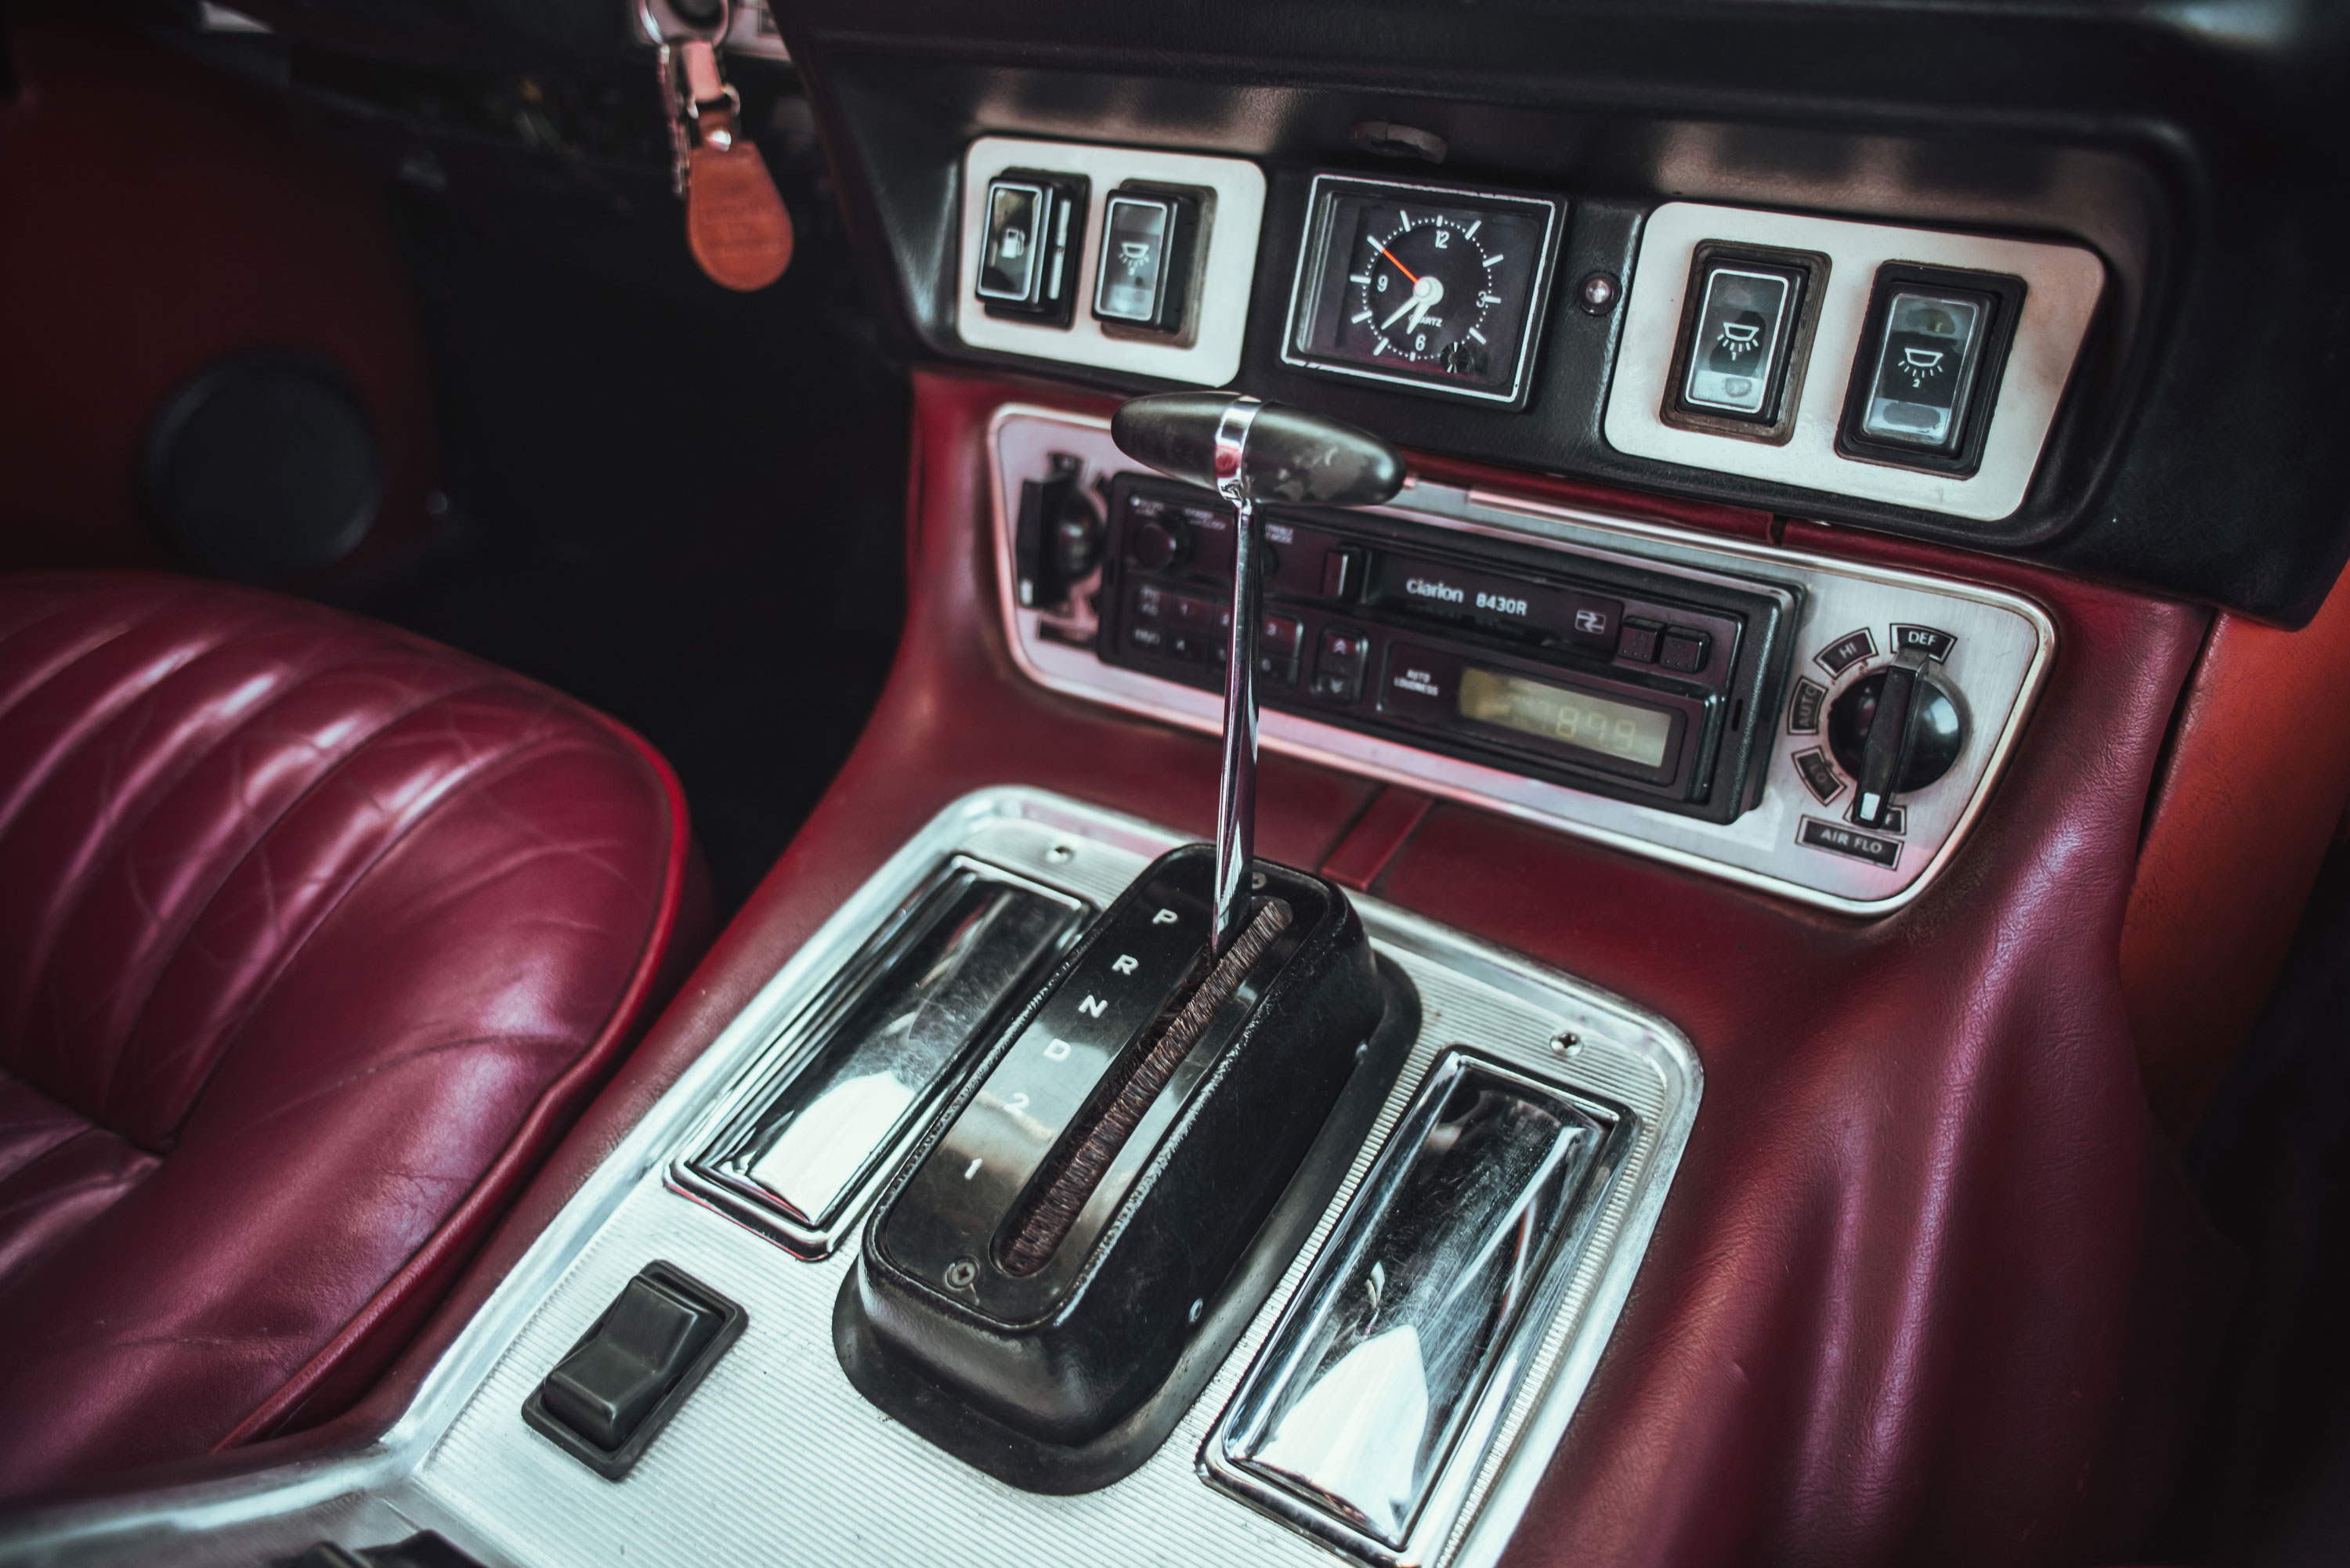 1974 Jaguar XJ6 shifter